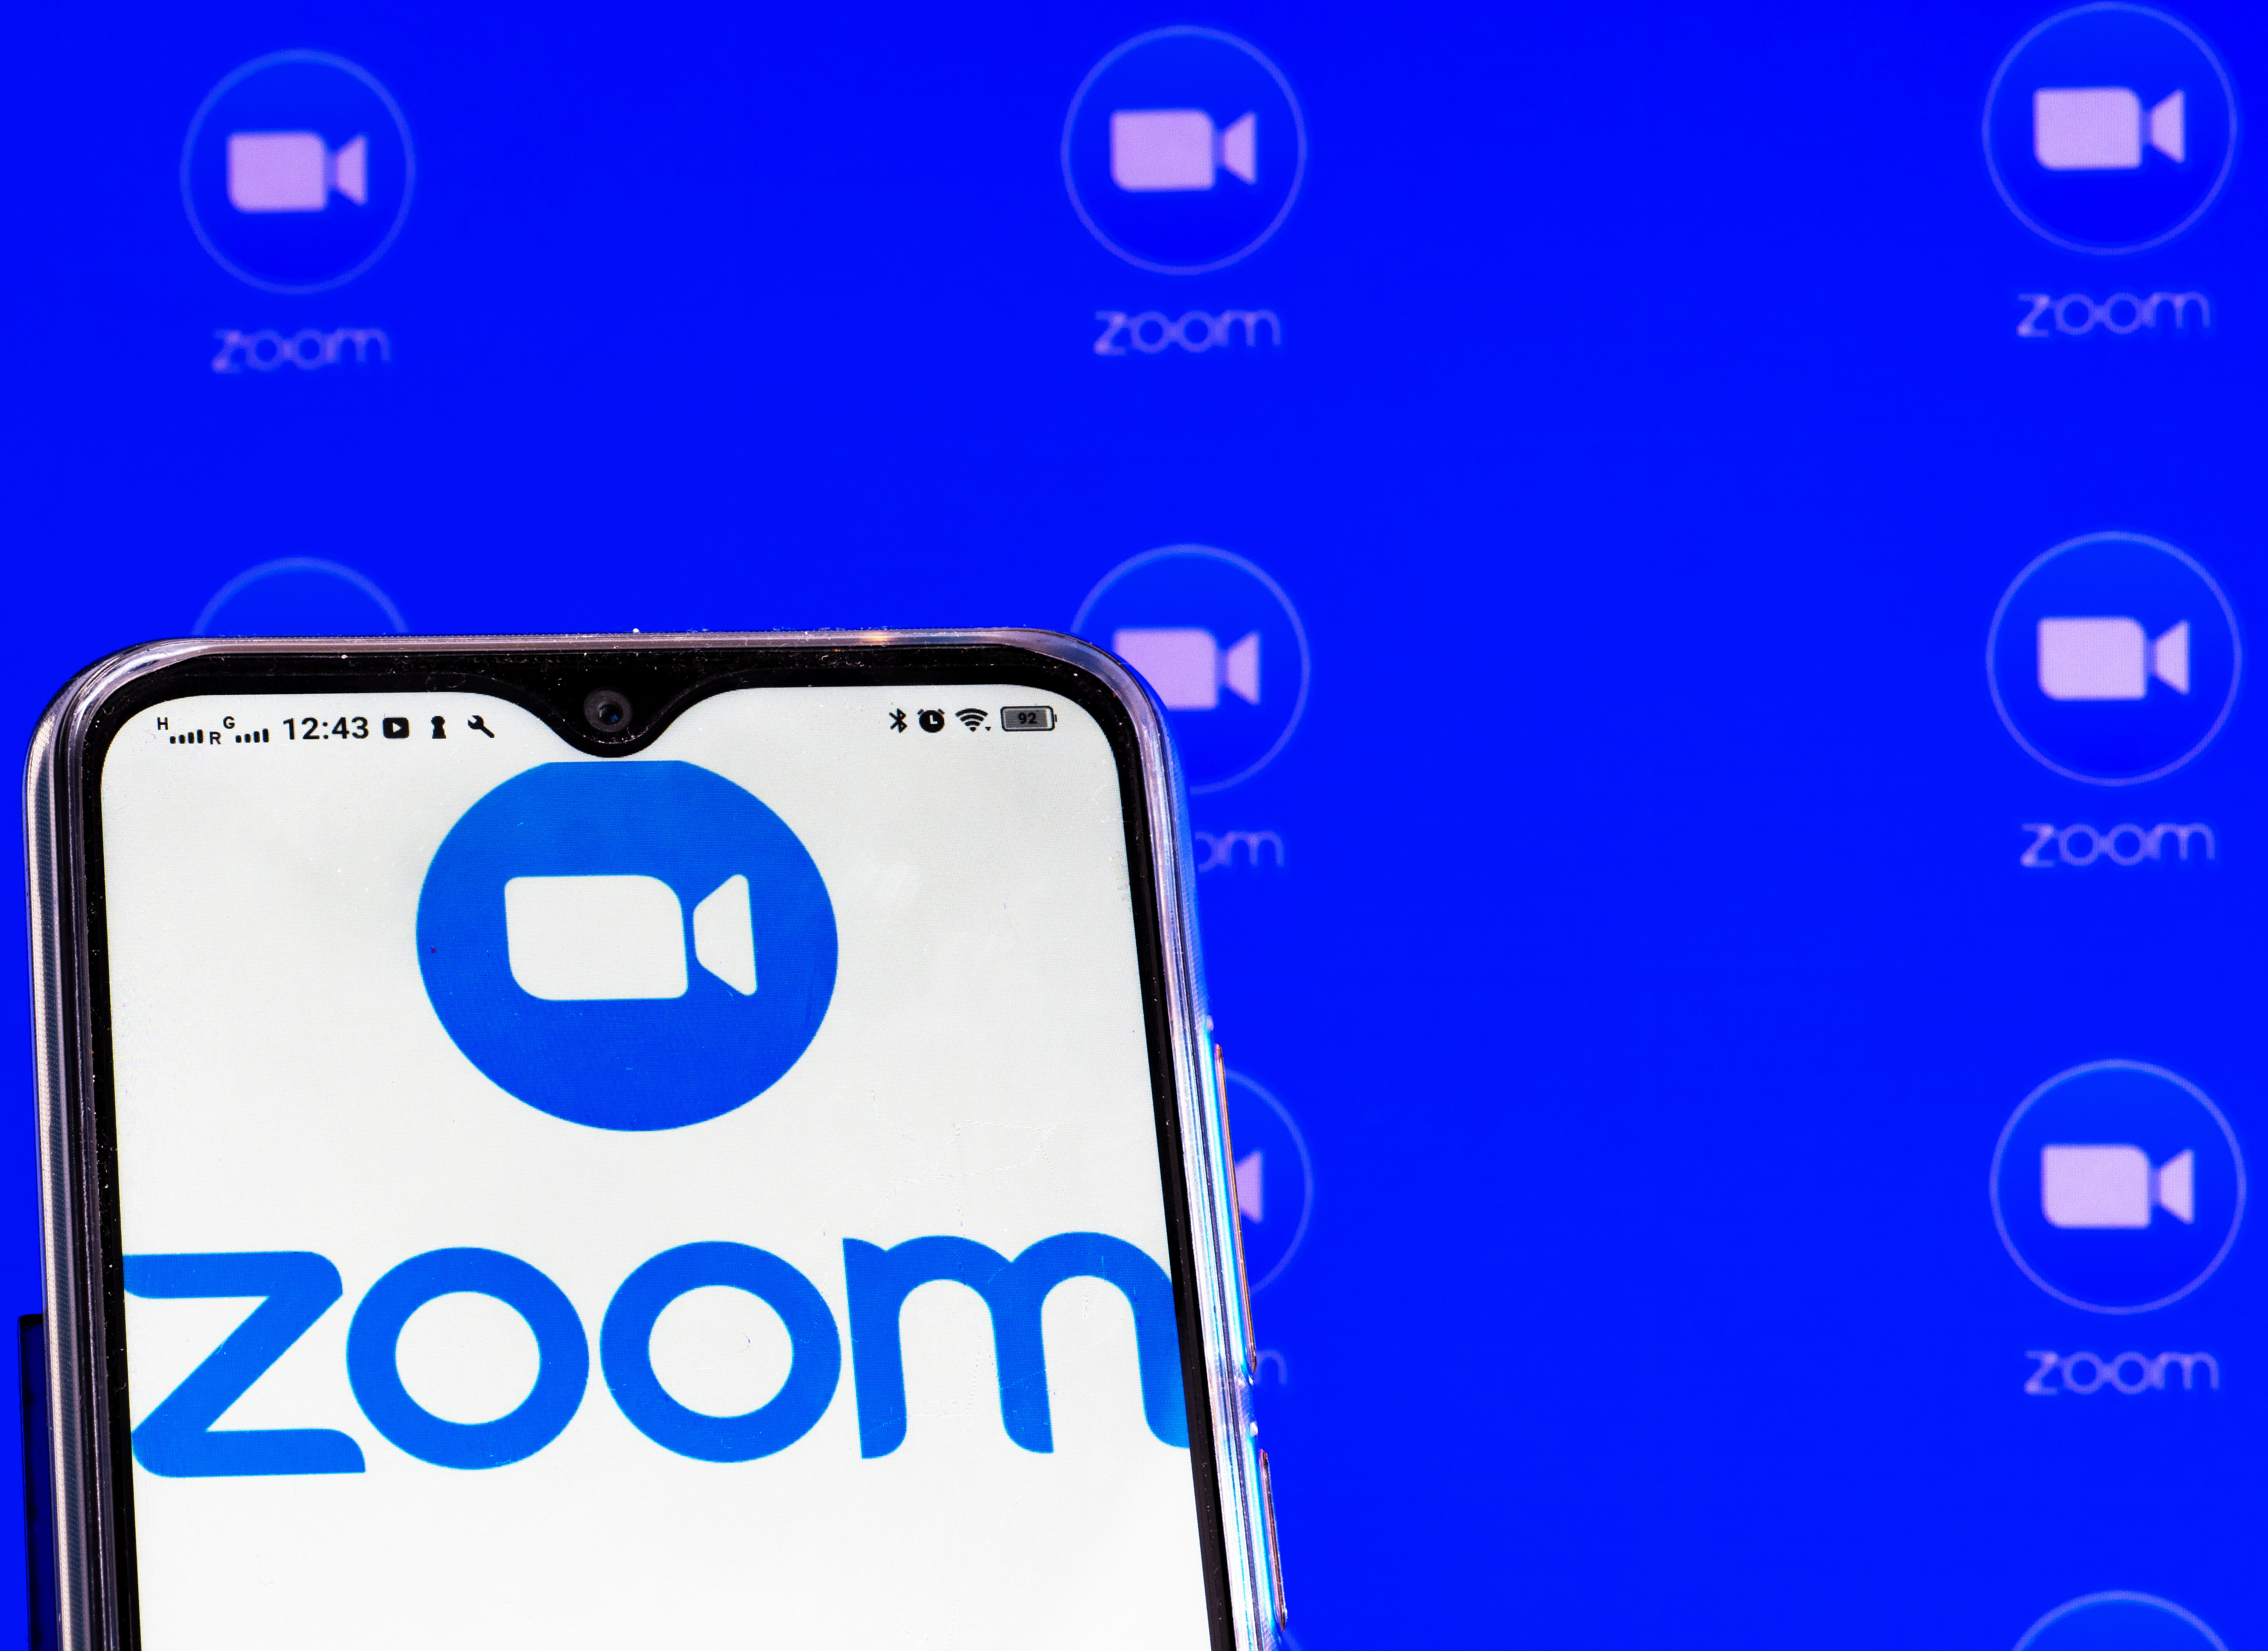 UKRAINE - 2021/02/01: In this photo illustration a Zoom Video Communications, Inc. logo is seen displayed on a smartphone screen. (Photo Illustration by Igor Golovniov/SOPA Images/LightRocket via Getty Images)